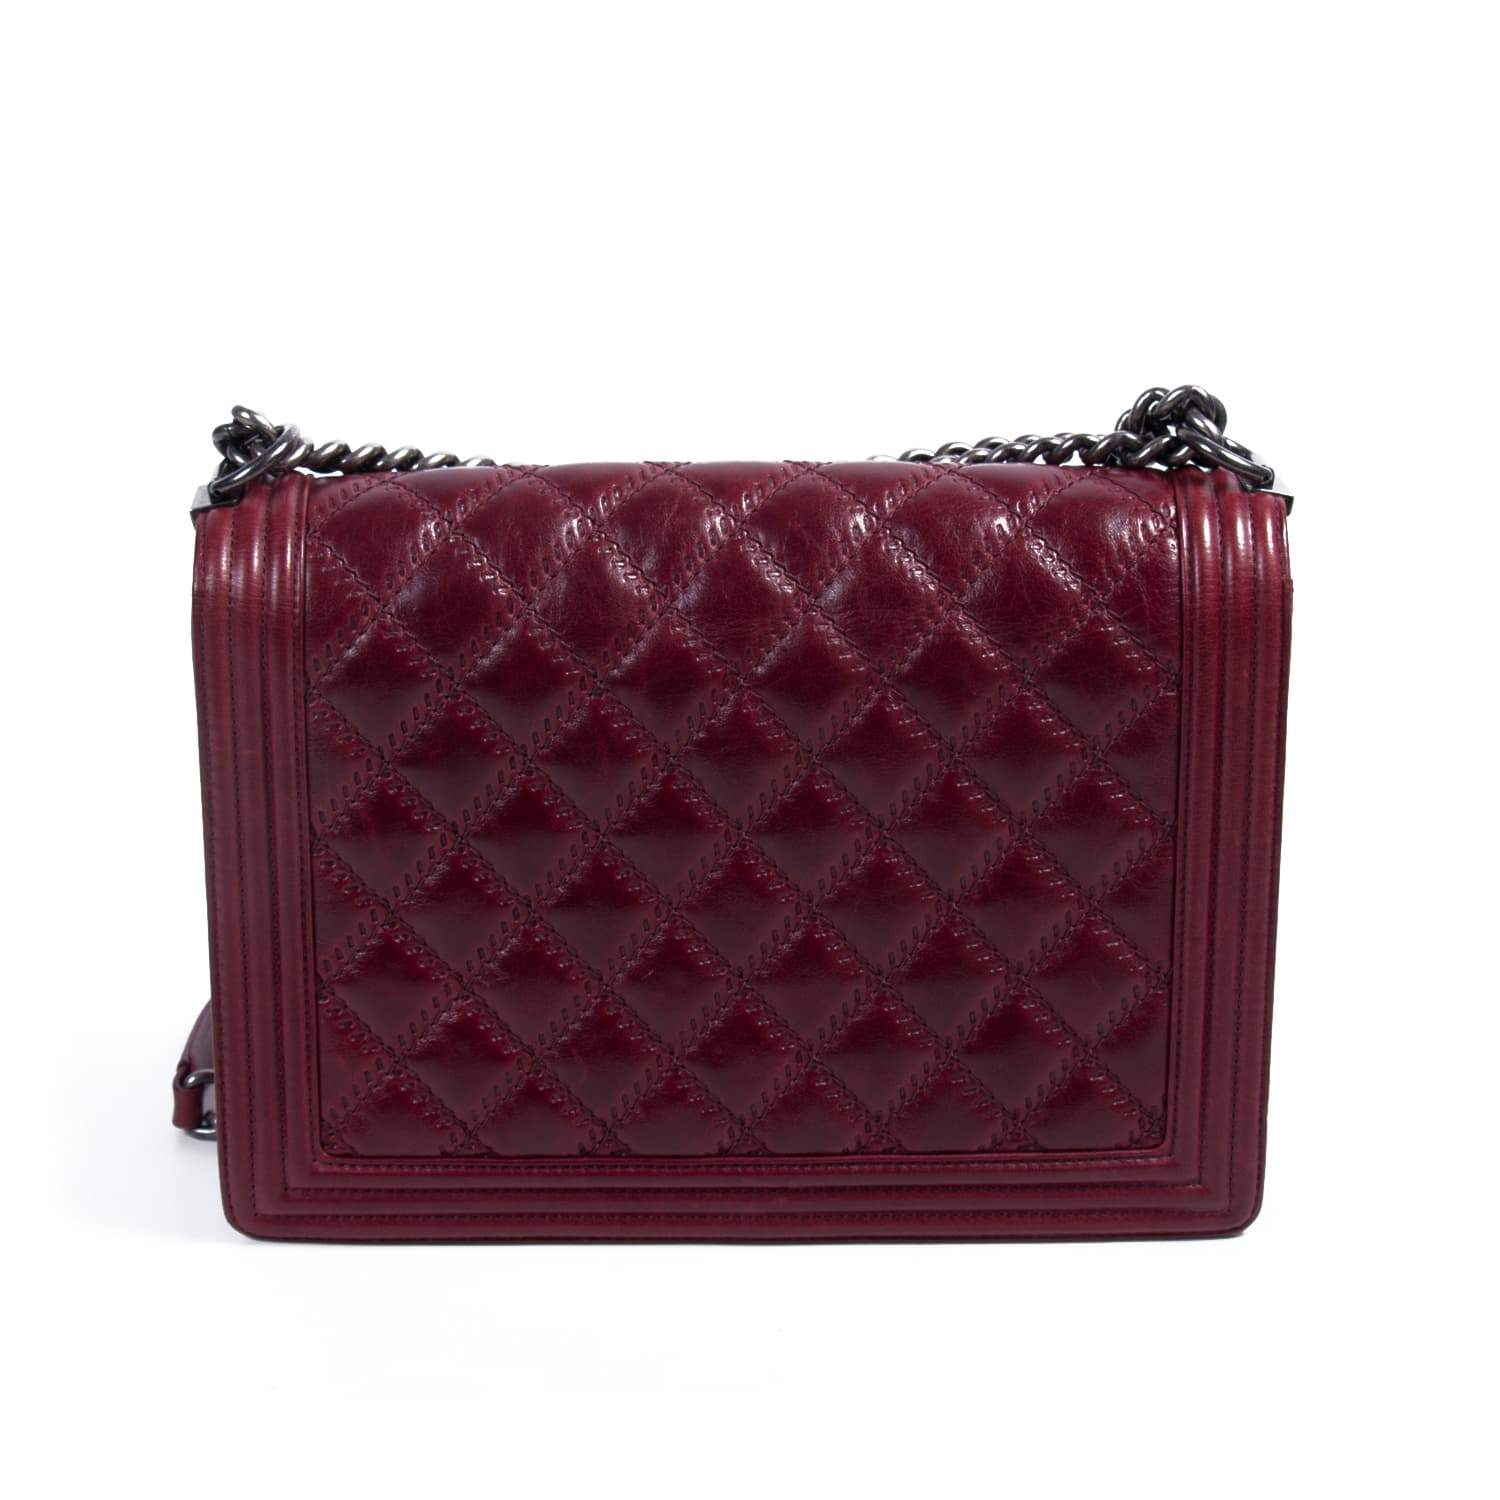 93f69e28ecd6 My-Luxury-Bargain-Chanel-Large-Burgundy-Quilted-Leather-Large-Boy-Bag-3.jpg